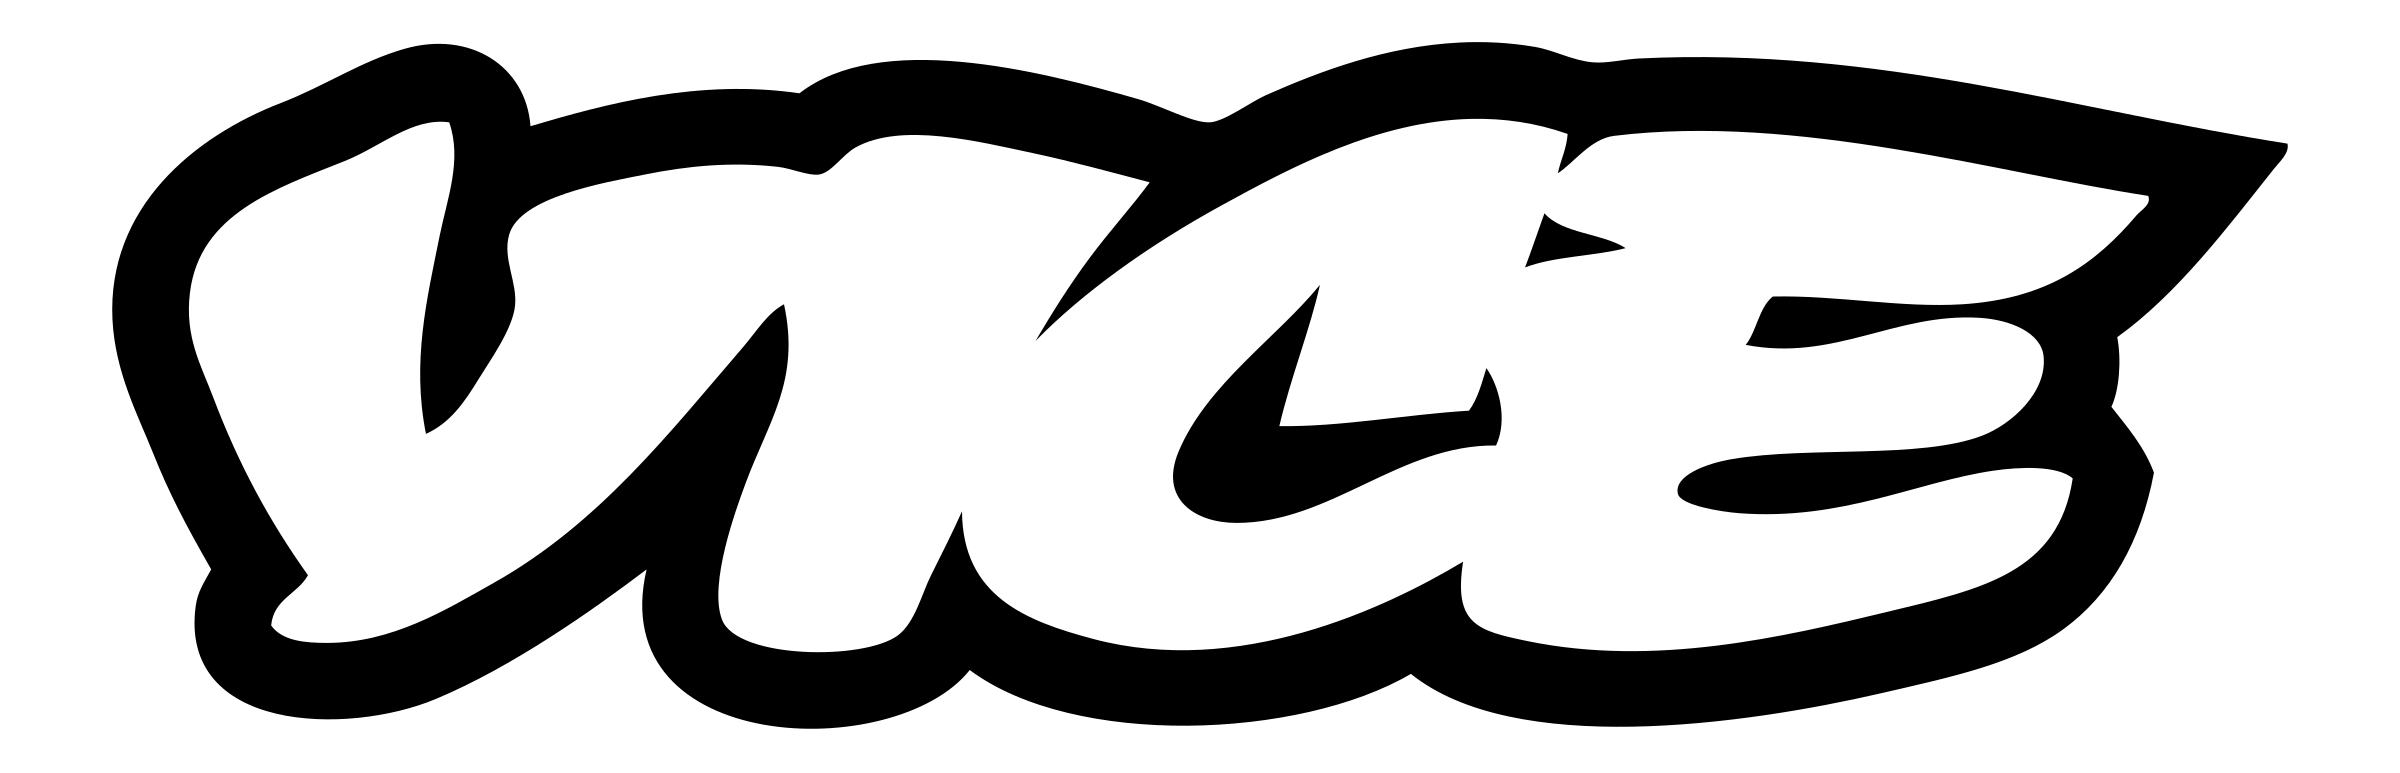 vice-logo-transparent